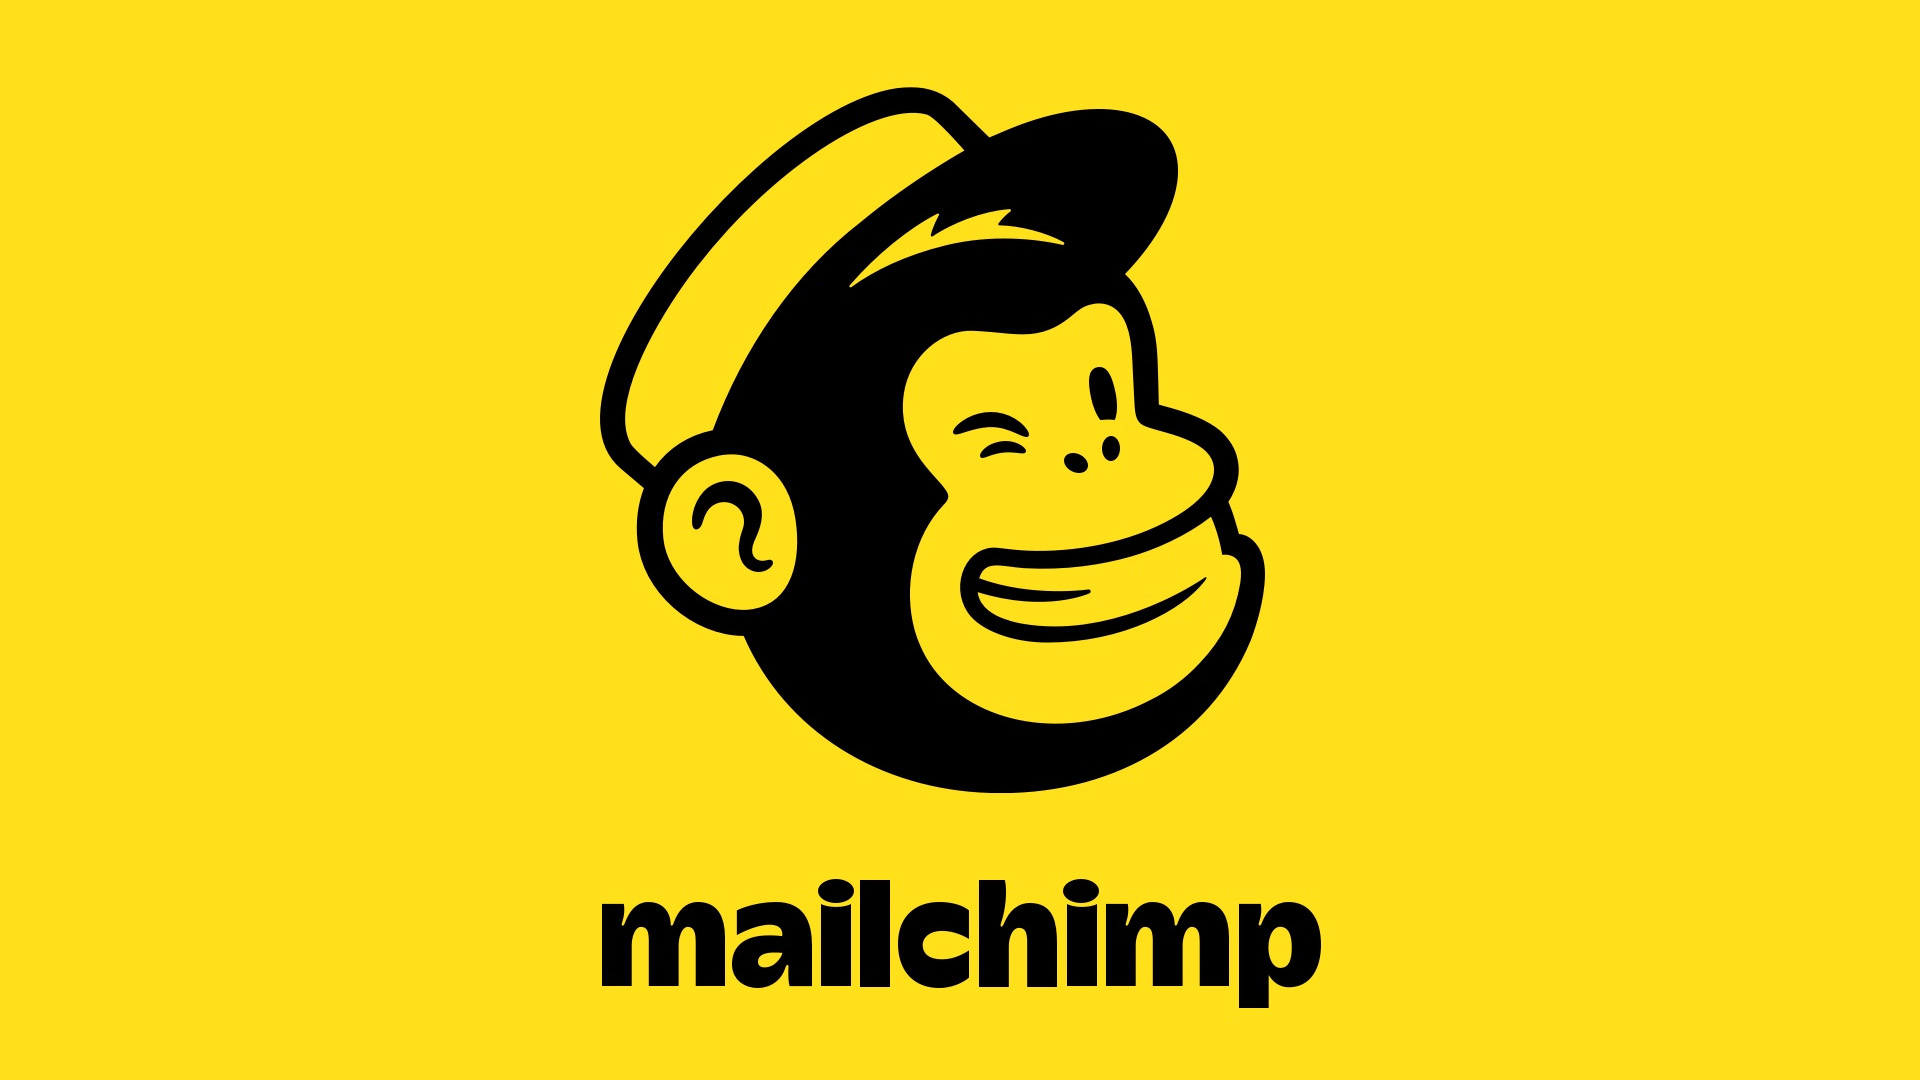 De 0 à 400 millions de dollars par an (Mailchimp) #GrowthHacking #WEbMarketing #FormationGrowthHacking #CentreDeFormationFrance #TunnelAARRR #AARRR #SocialMedia #CommunityManagement #Mailchimp